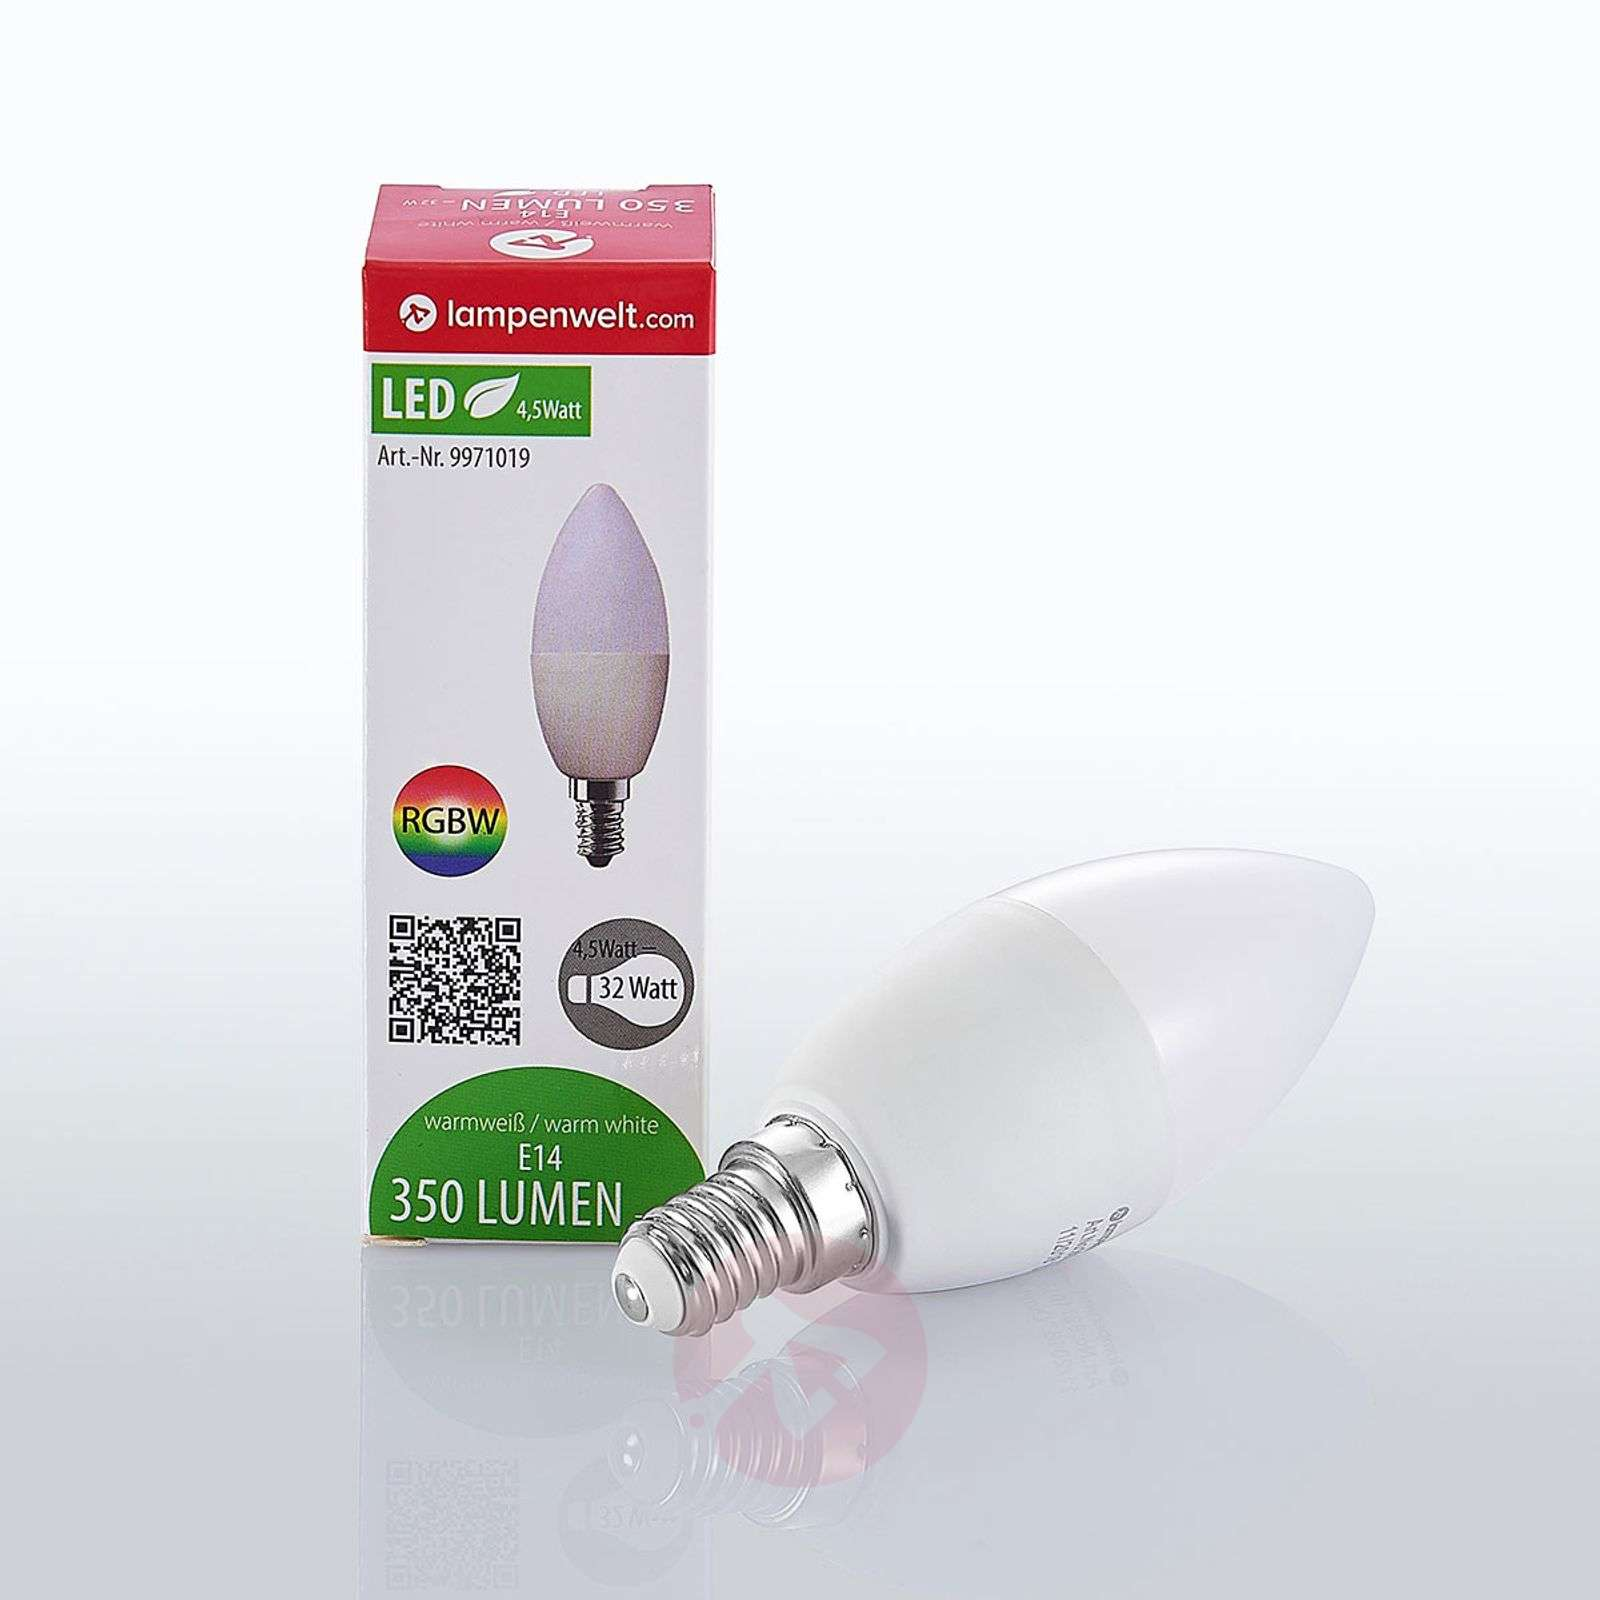 Smart Rvb E14 4 Led Lindby 5 Ampoule Wifi Bougie W UVzqMGSp